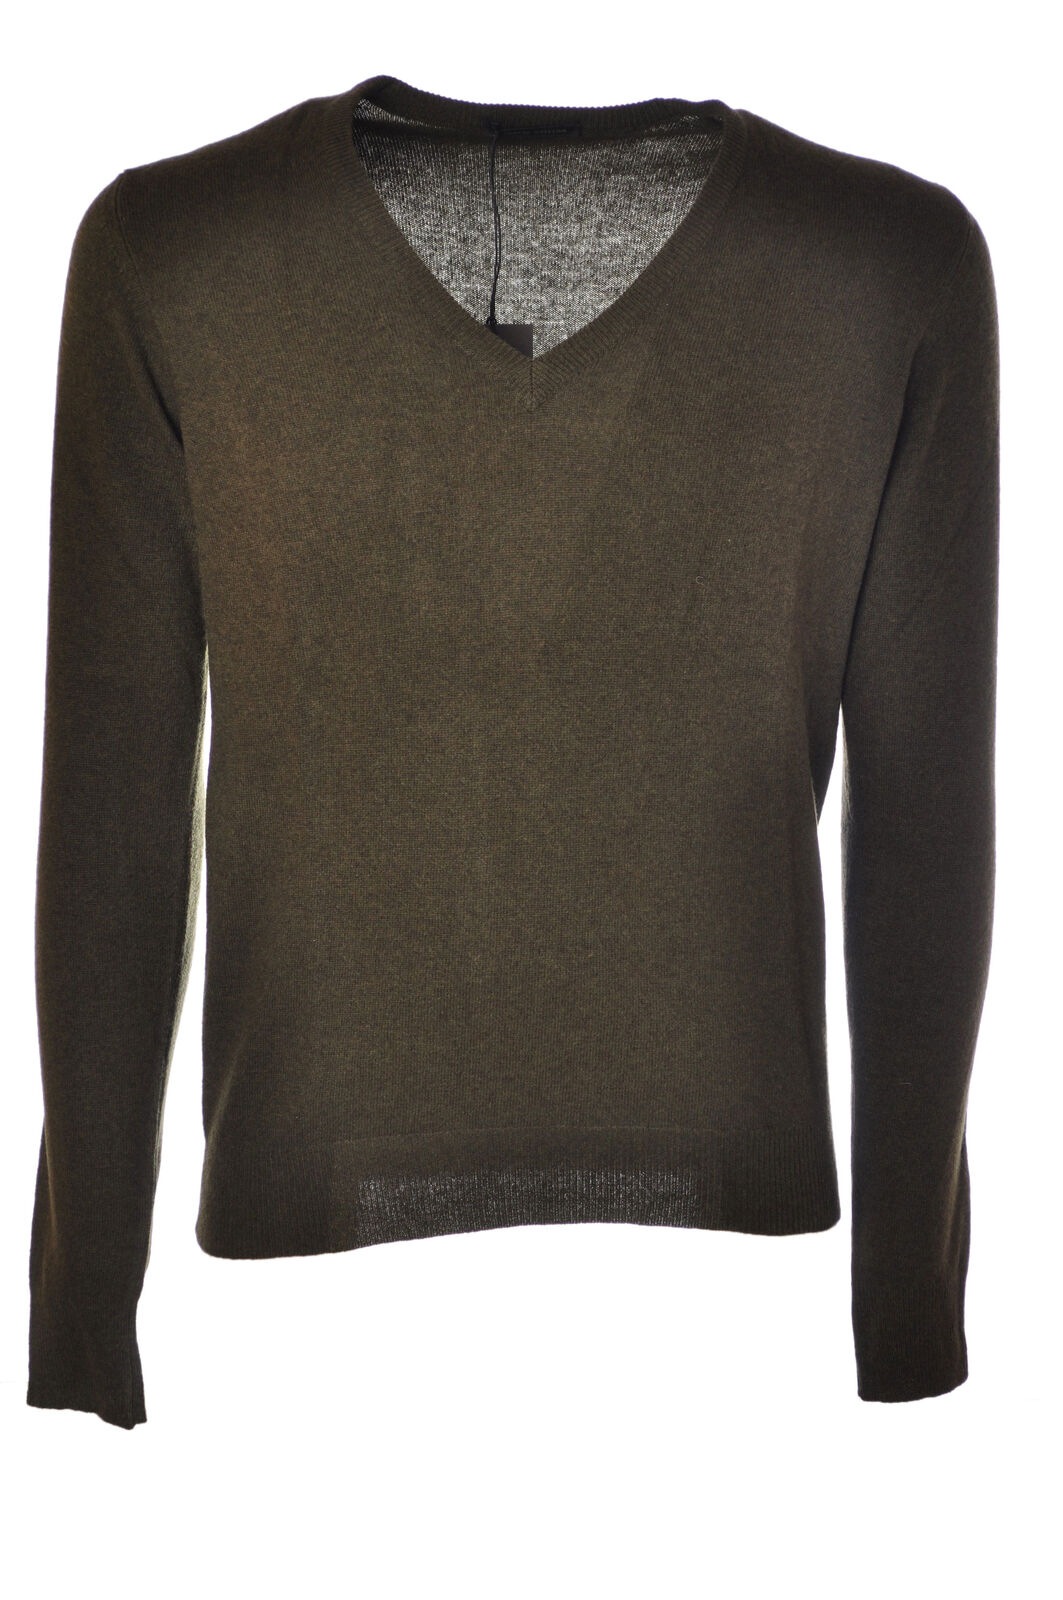 Roberto Collina  -  Sweaters - Male - Grün - 2834431N173954